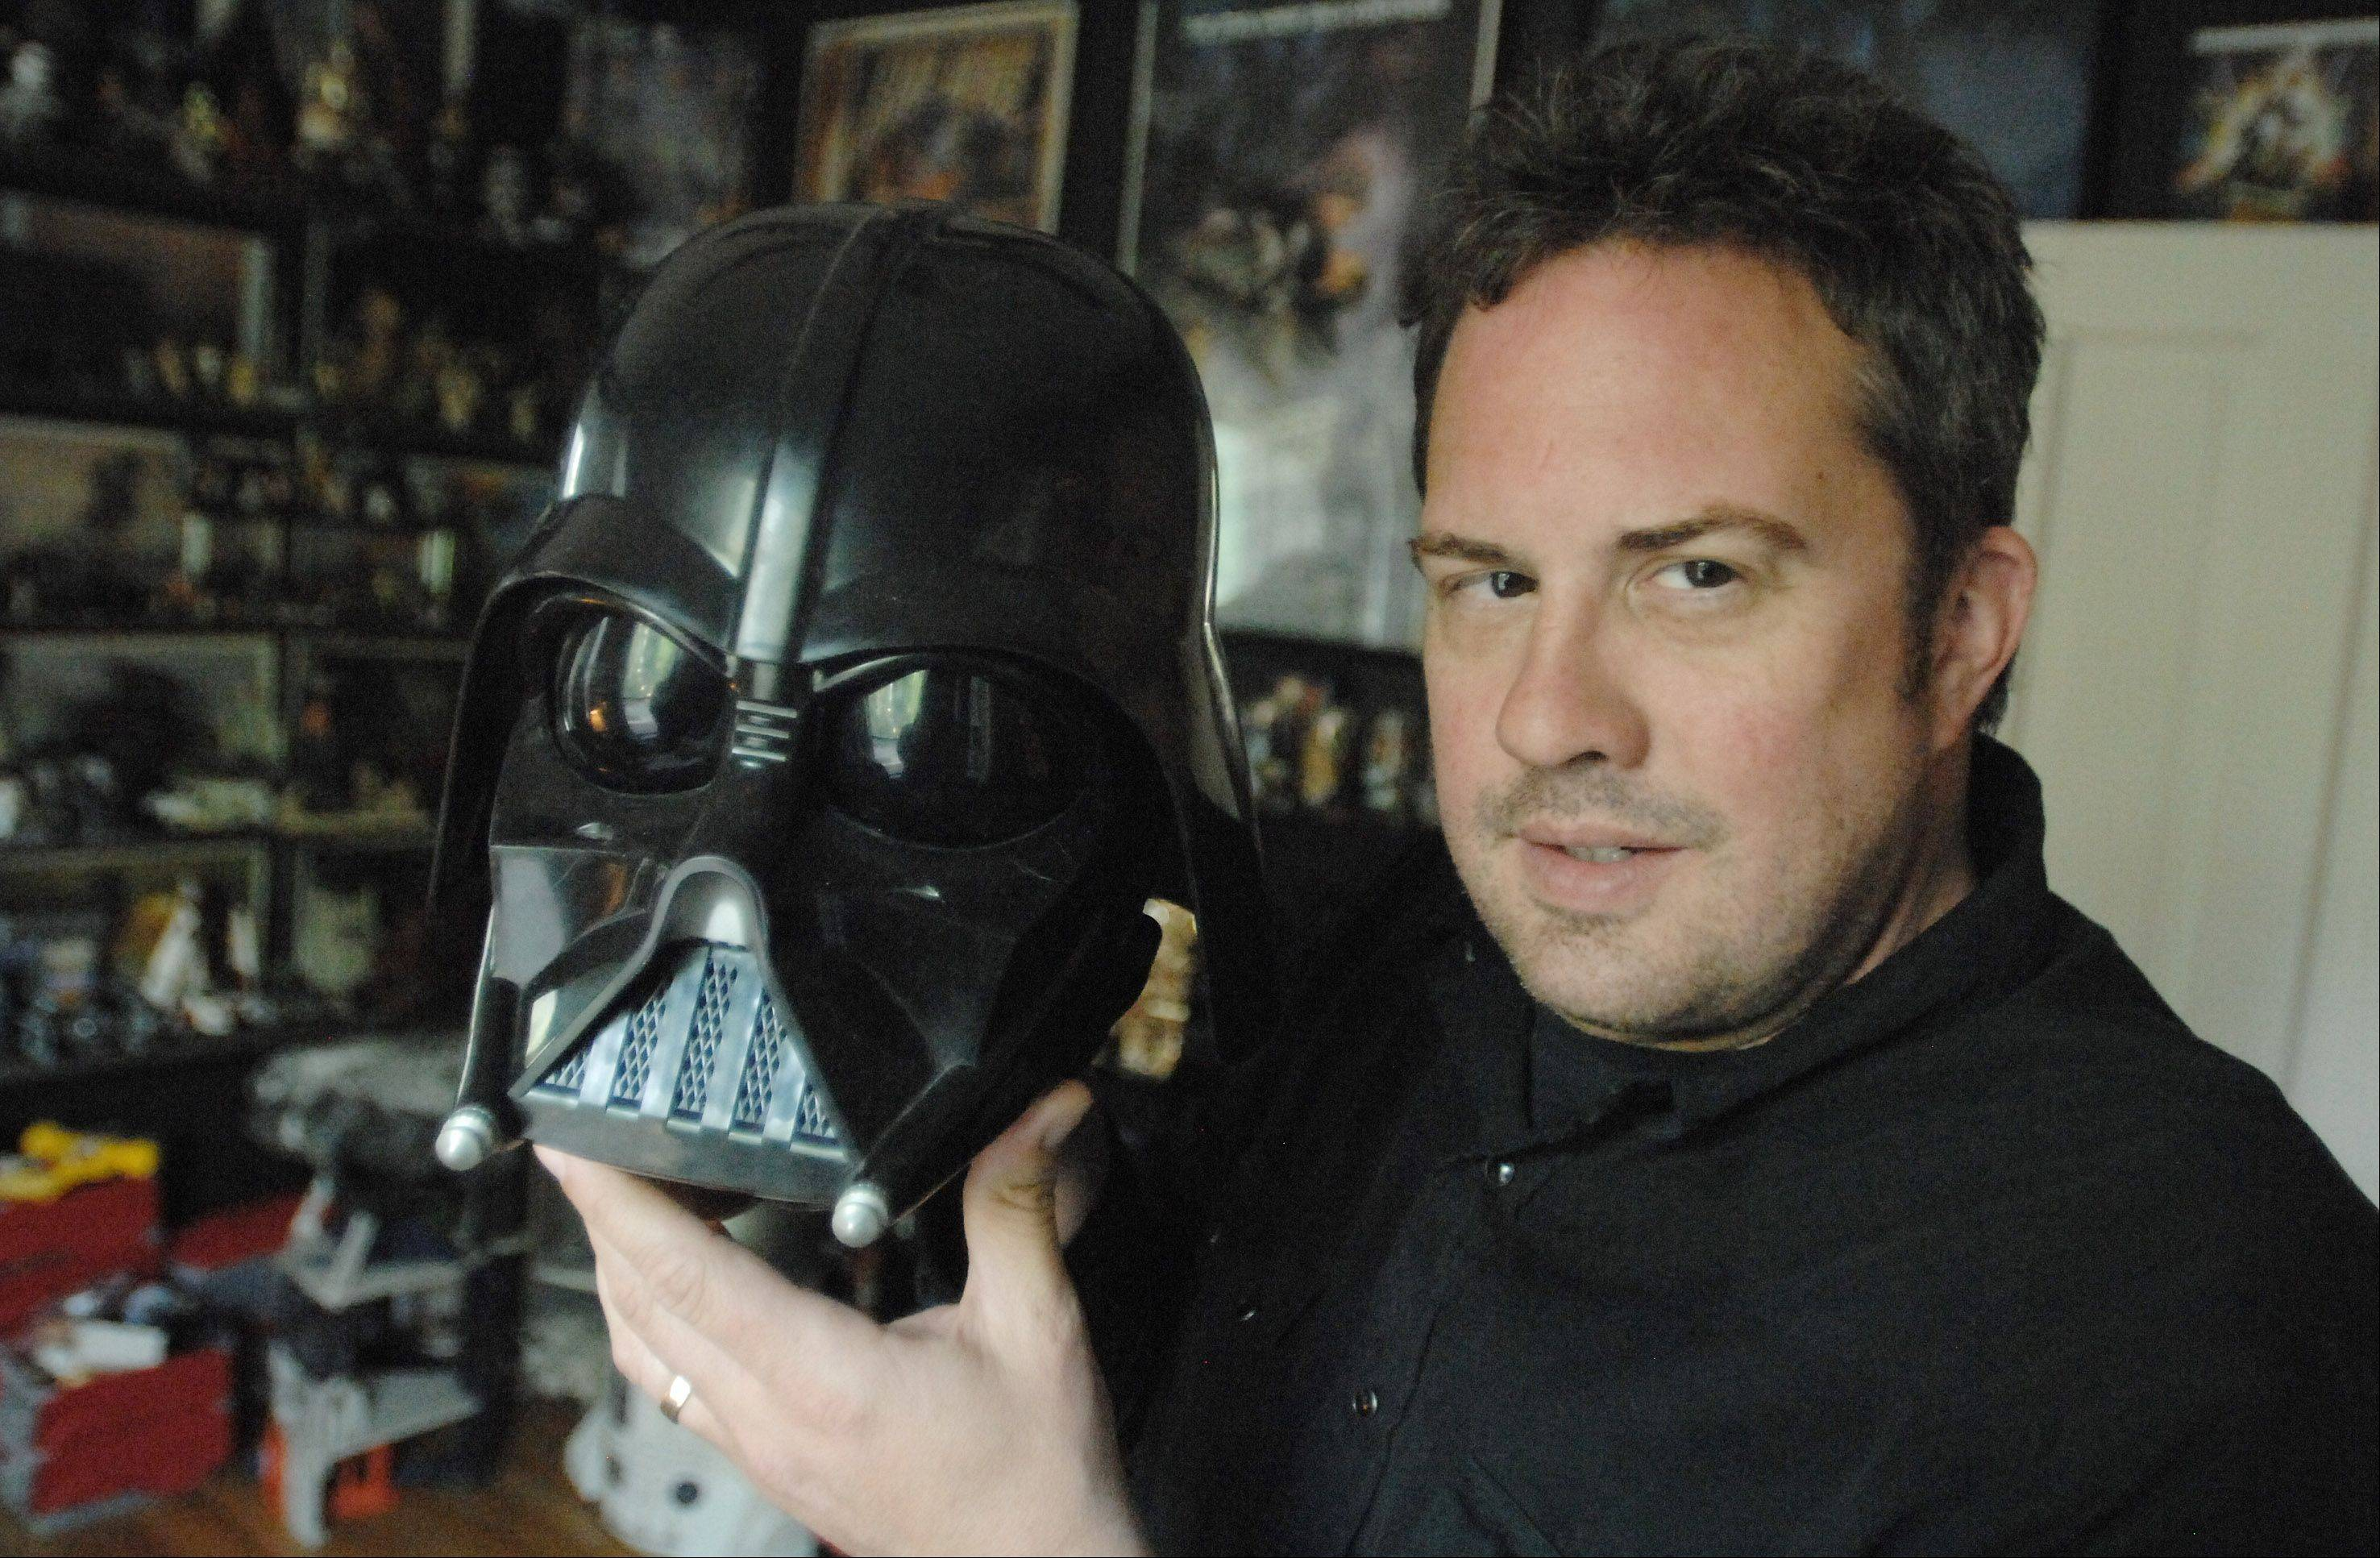 Jimmy �Mac� McInerney, program director at radio station 95.9 FM �The River� in Aurora, is also a devoted �Star Wars� fan and collector. He will be interviewing fans at the Wizard World Chicago Comic Con for a �Star Wars�-related podcast he co-hosts.